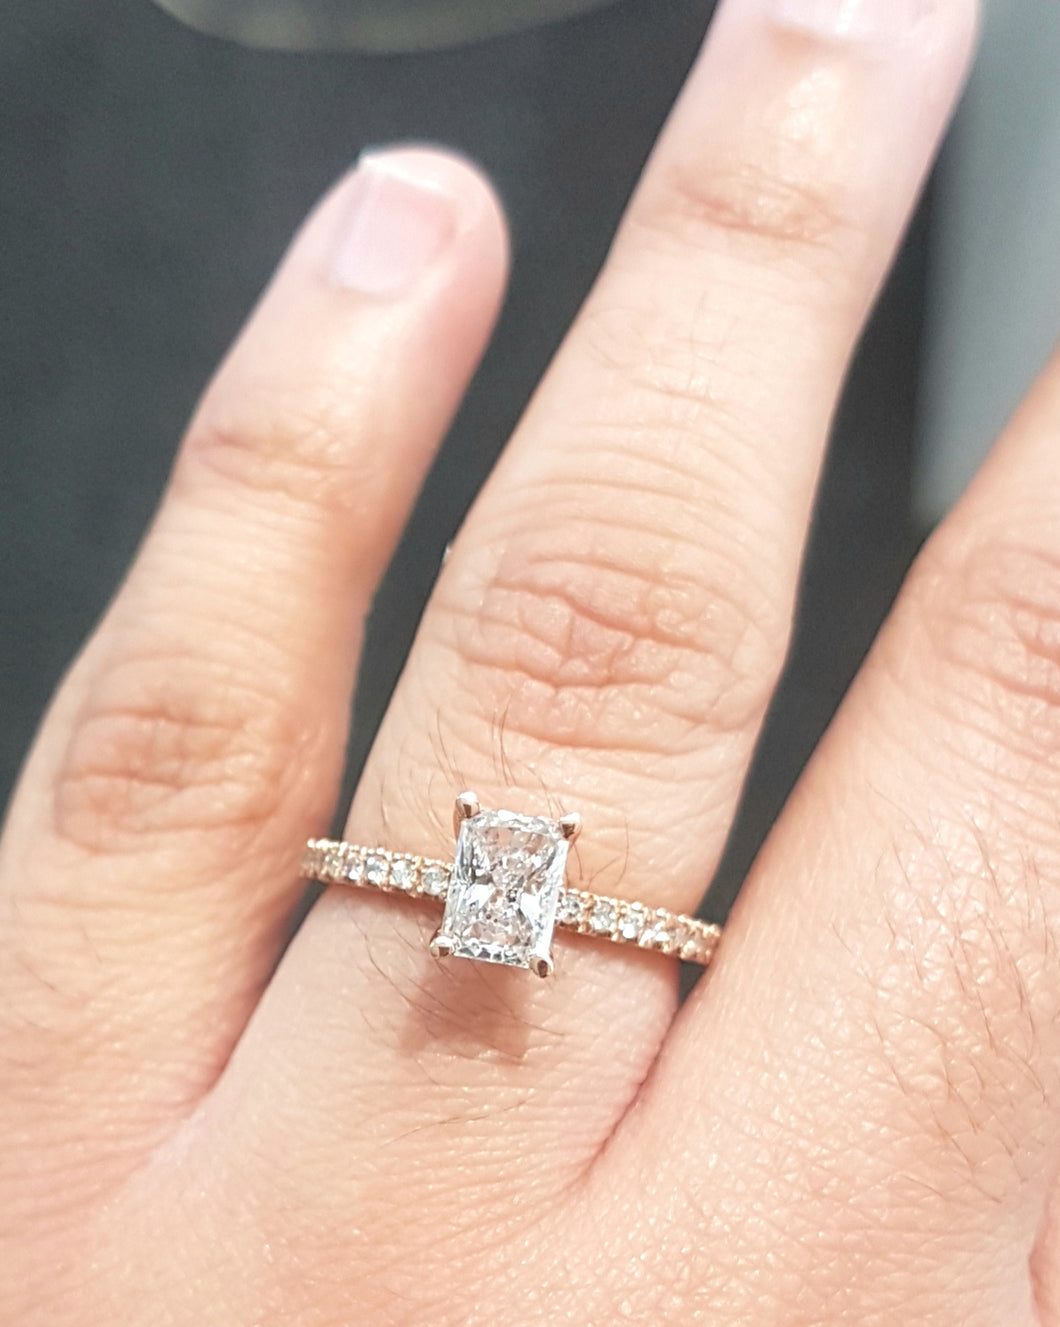 0.772ct Radiant Cut Diamond Centre | 0.18ct [18] Round Cut Diamonds Pave Setting | Designer Ring | 18kt Rose Gold